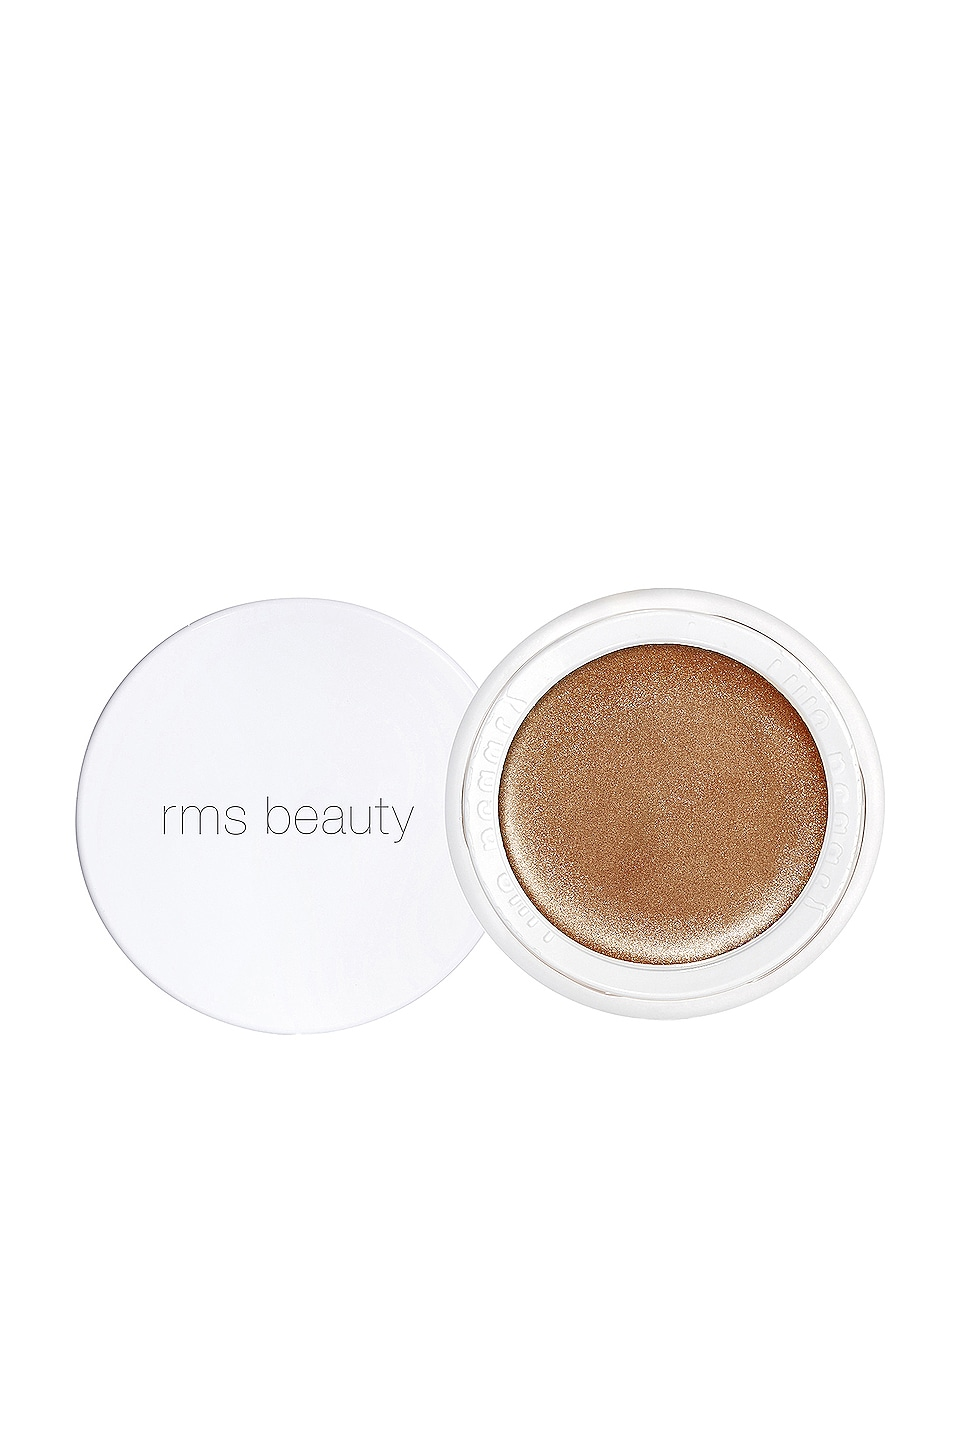 RMS Beauty Buriti Bronzer in All